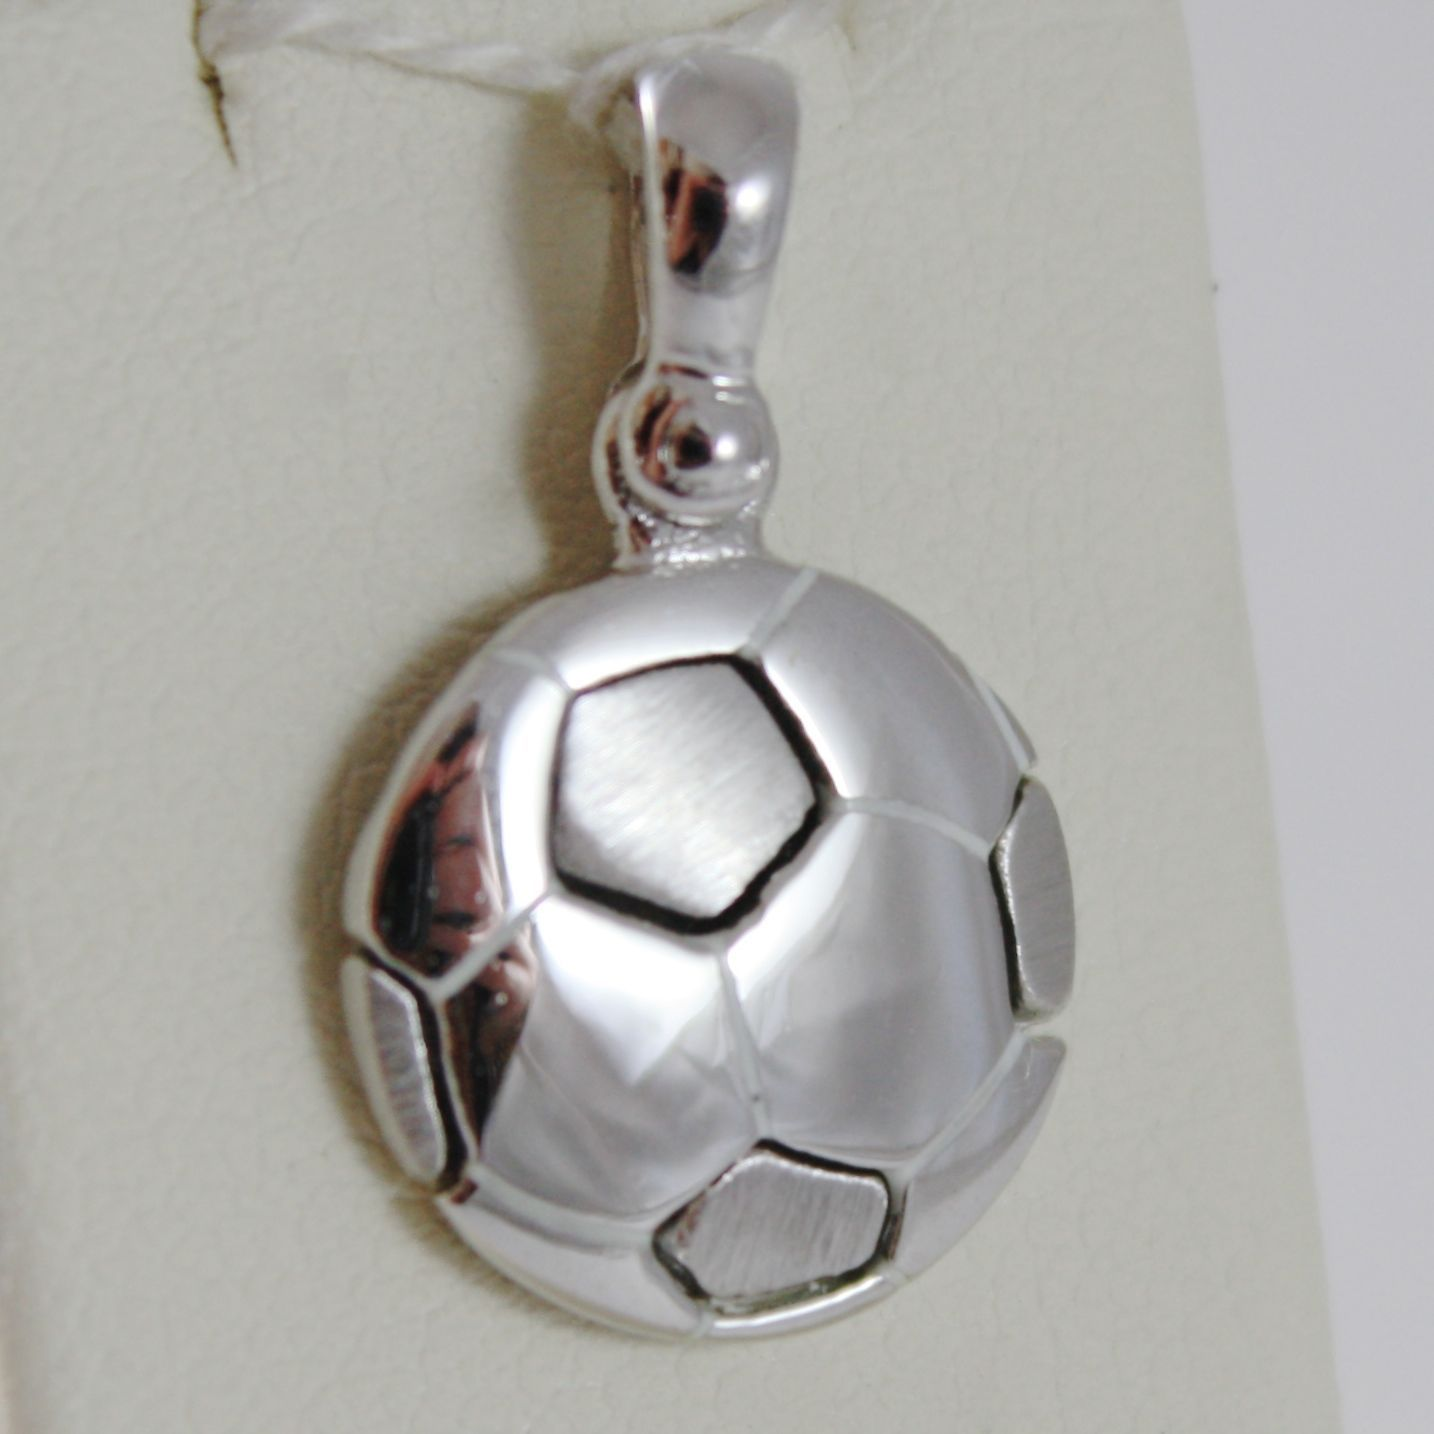 SOLID 18K WHITE GOLD SOCCER BALL PENDANT, SATIN CHARMS, FOOTBALL, MADE IN ITALY